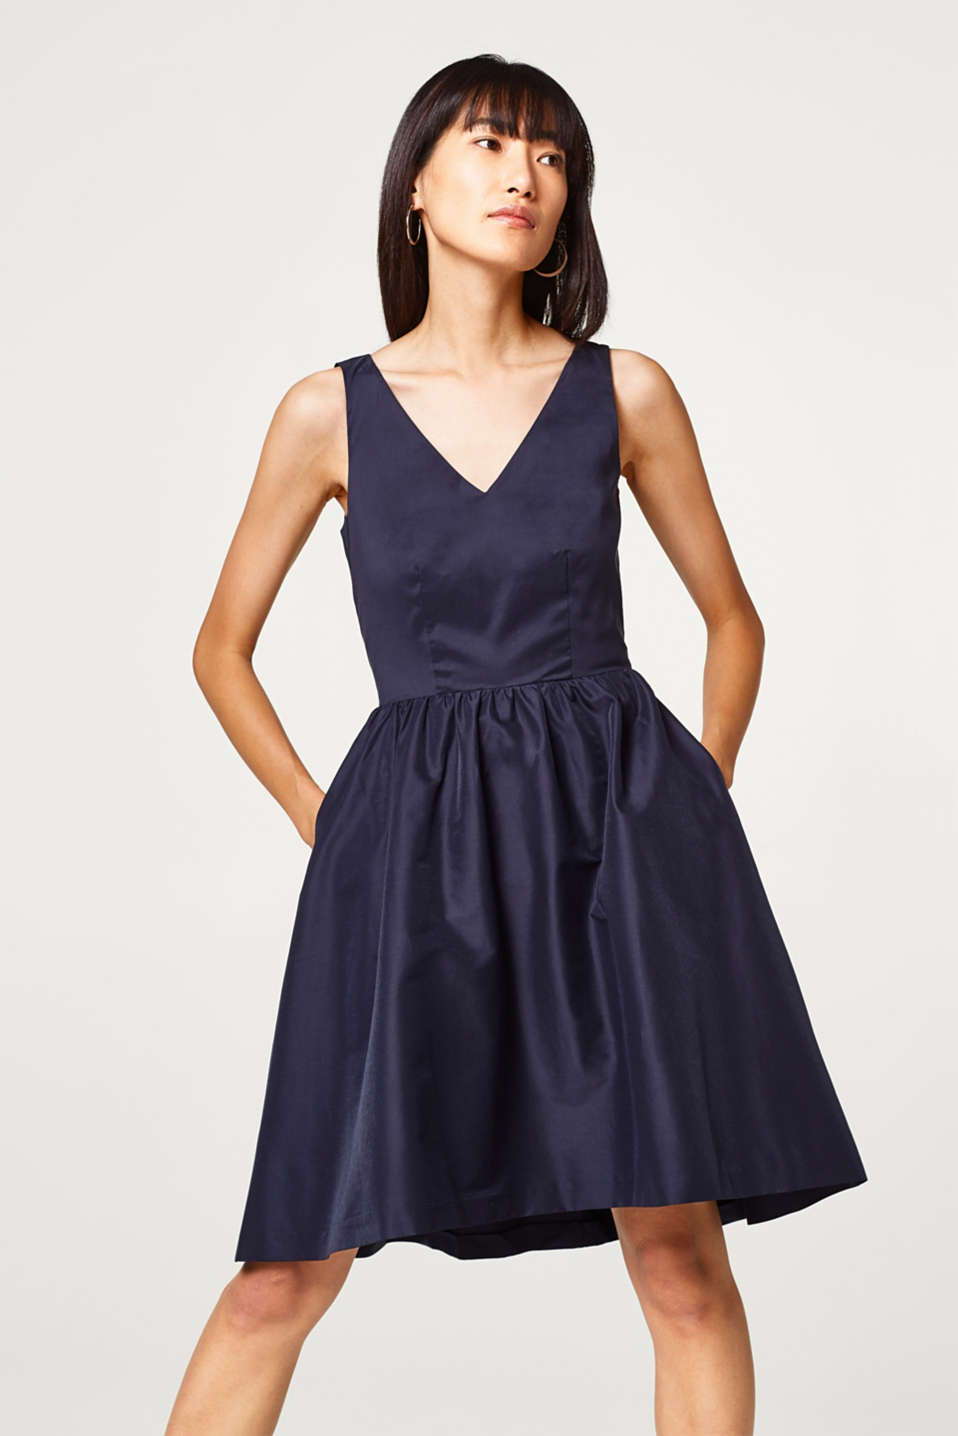 Esprit - Taffeta dress with a high-low hem and back strap